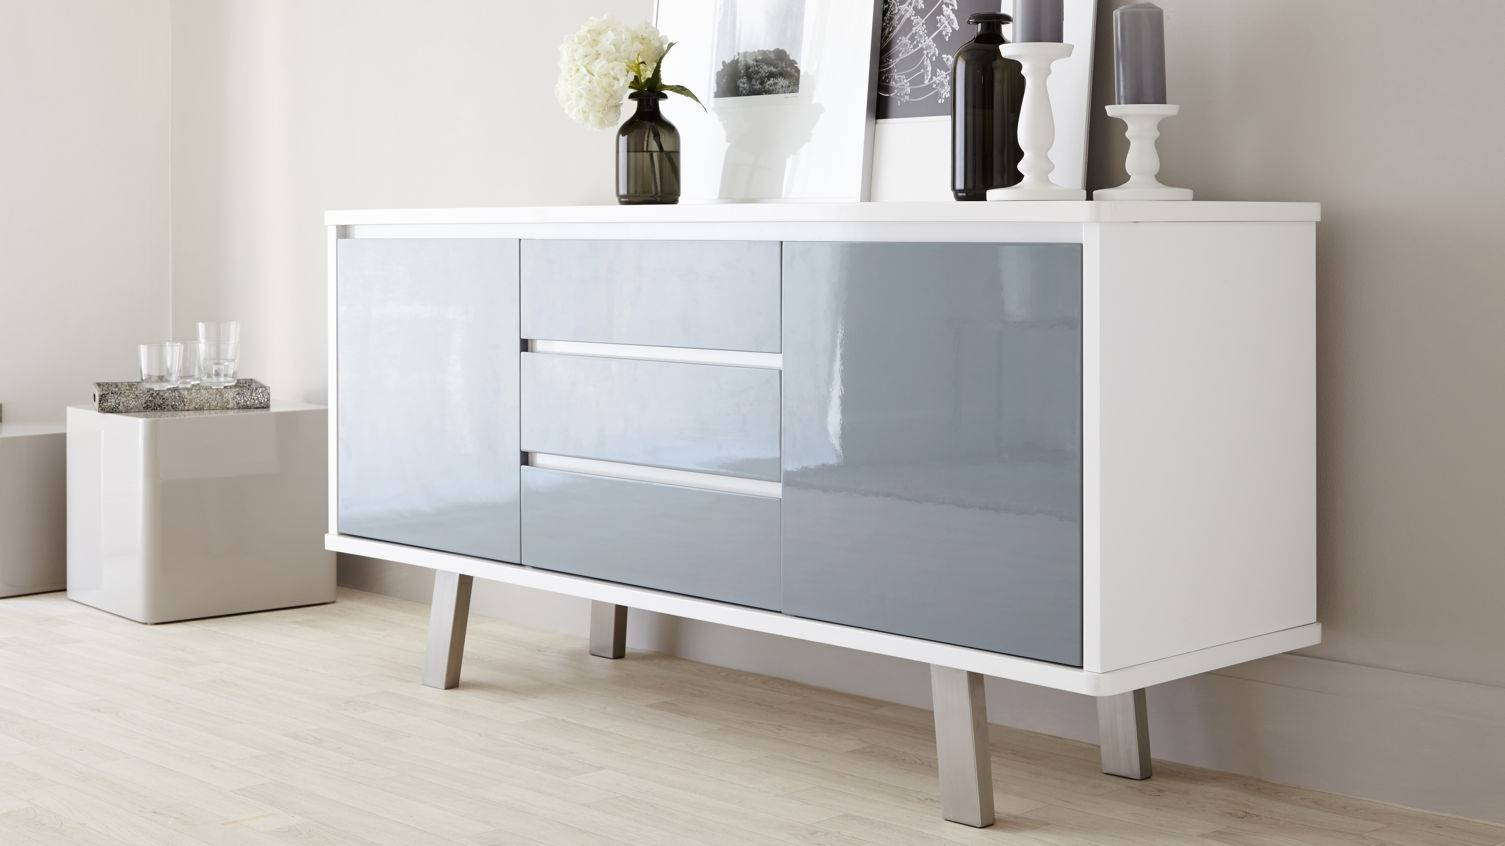 Furniture: Mid Century Modern Sideboard For Inspiring Interior within Elegant Sideboards (Image 6 of 15)